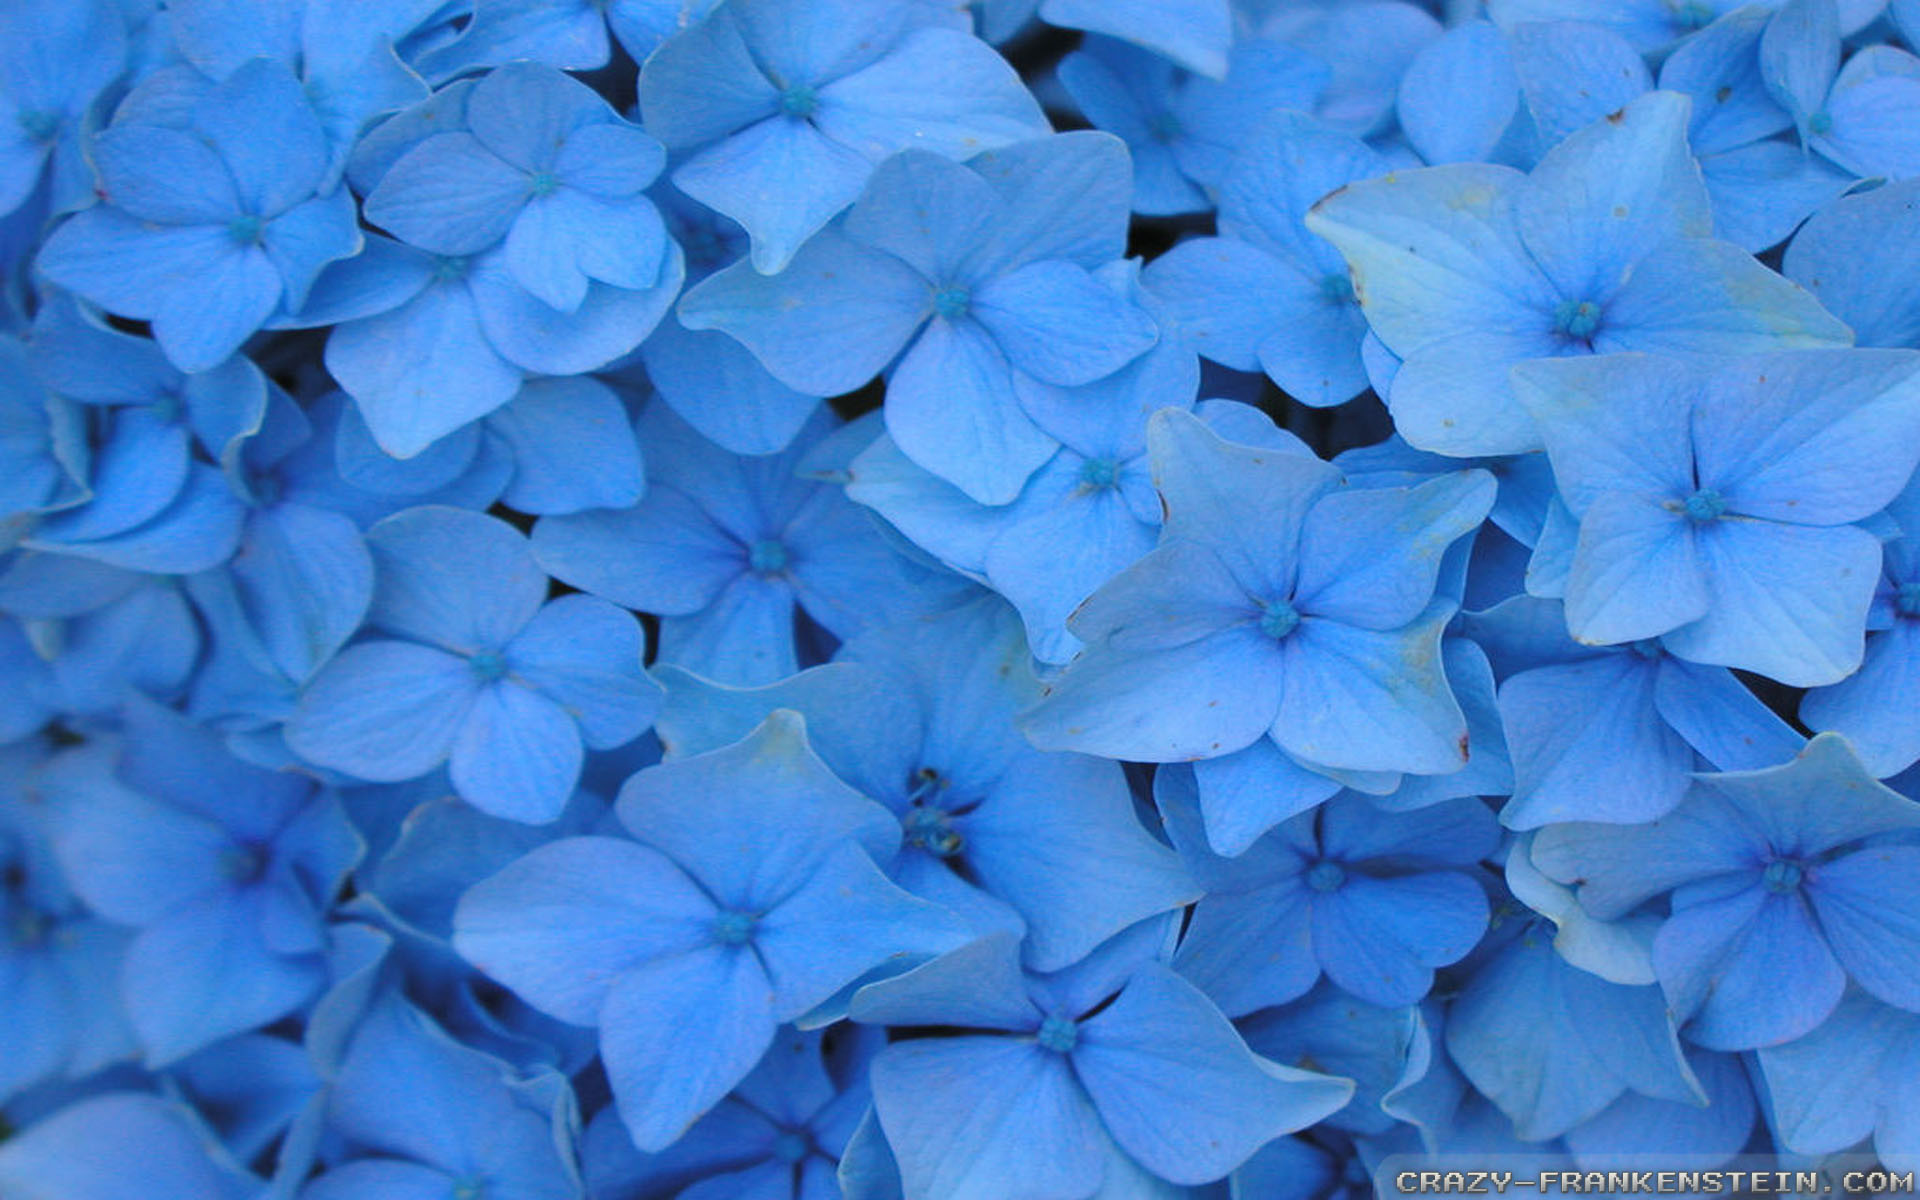 Free Download Most Beautiful Girl Wallpaper Blue Flower Wallpaper 61 Images